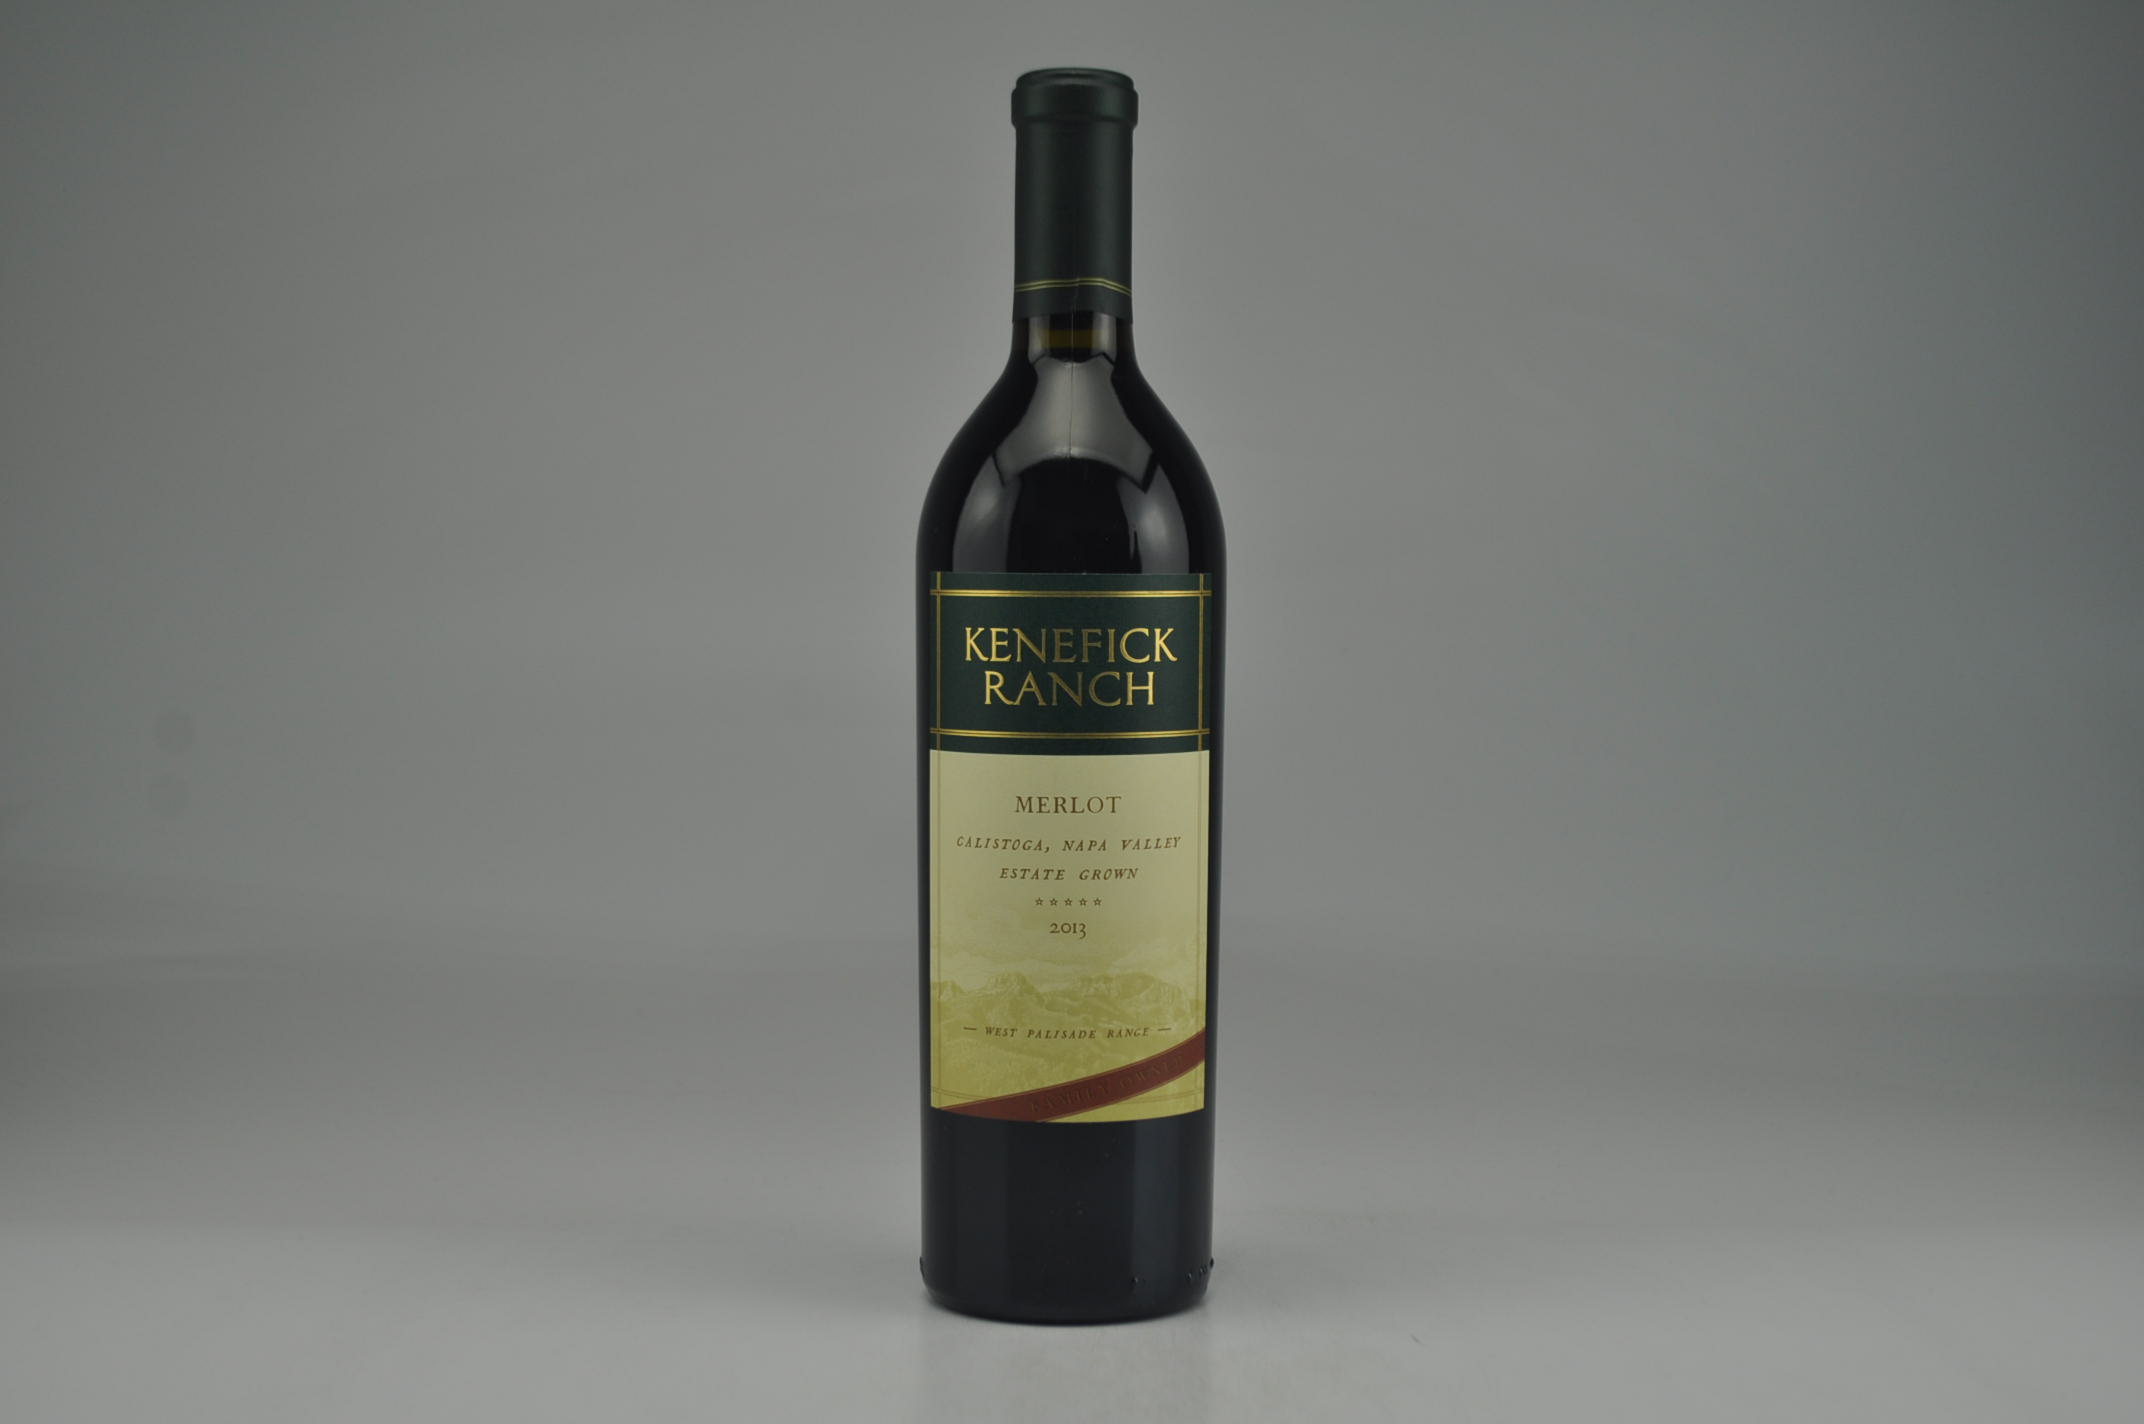 2013 Kenefick Ranch Merlot